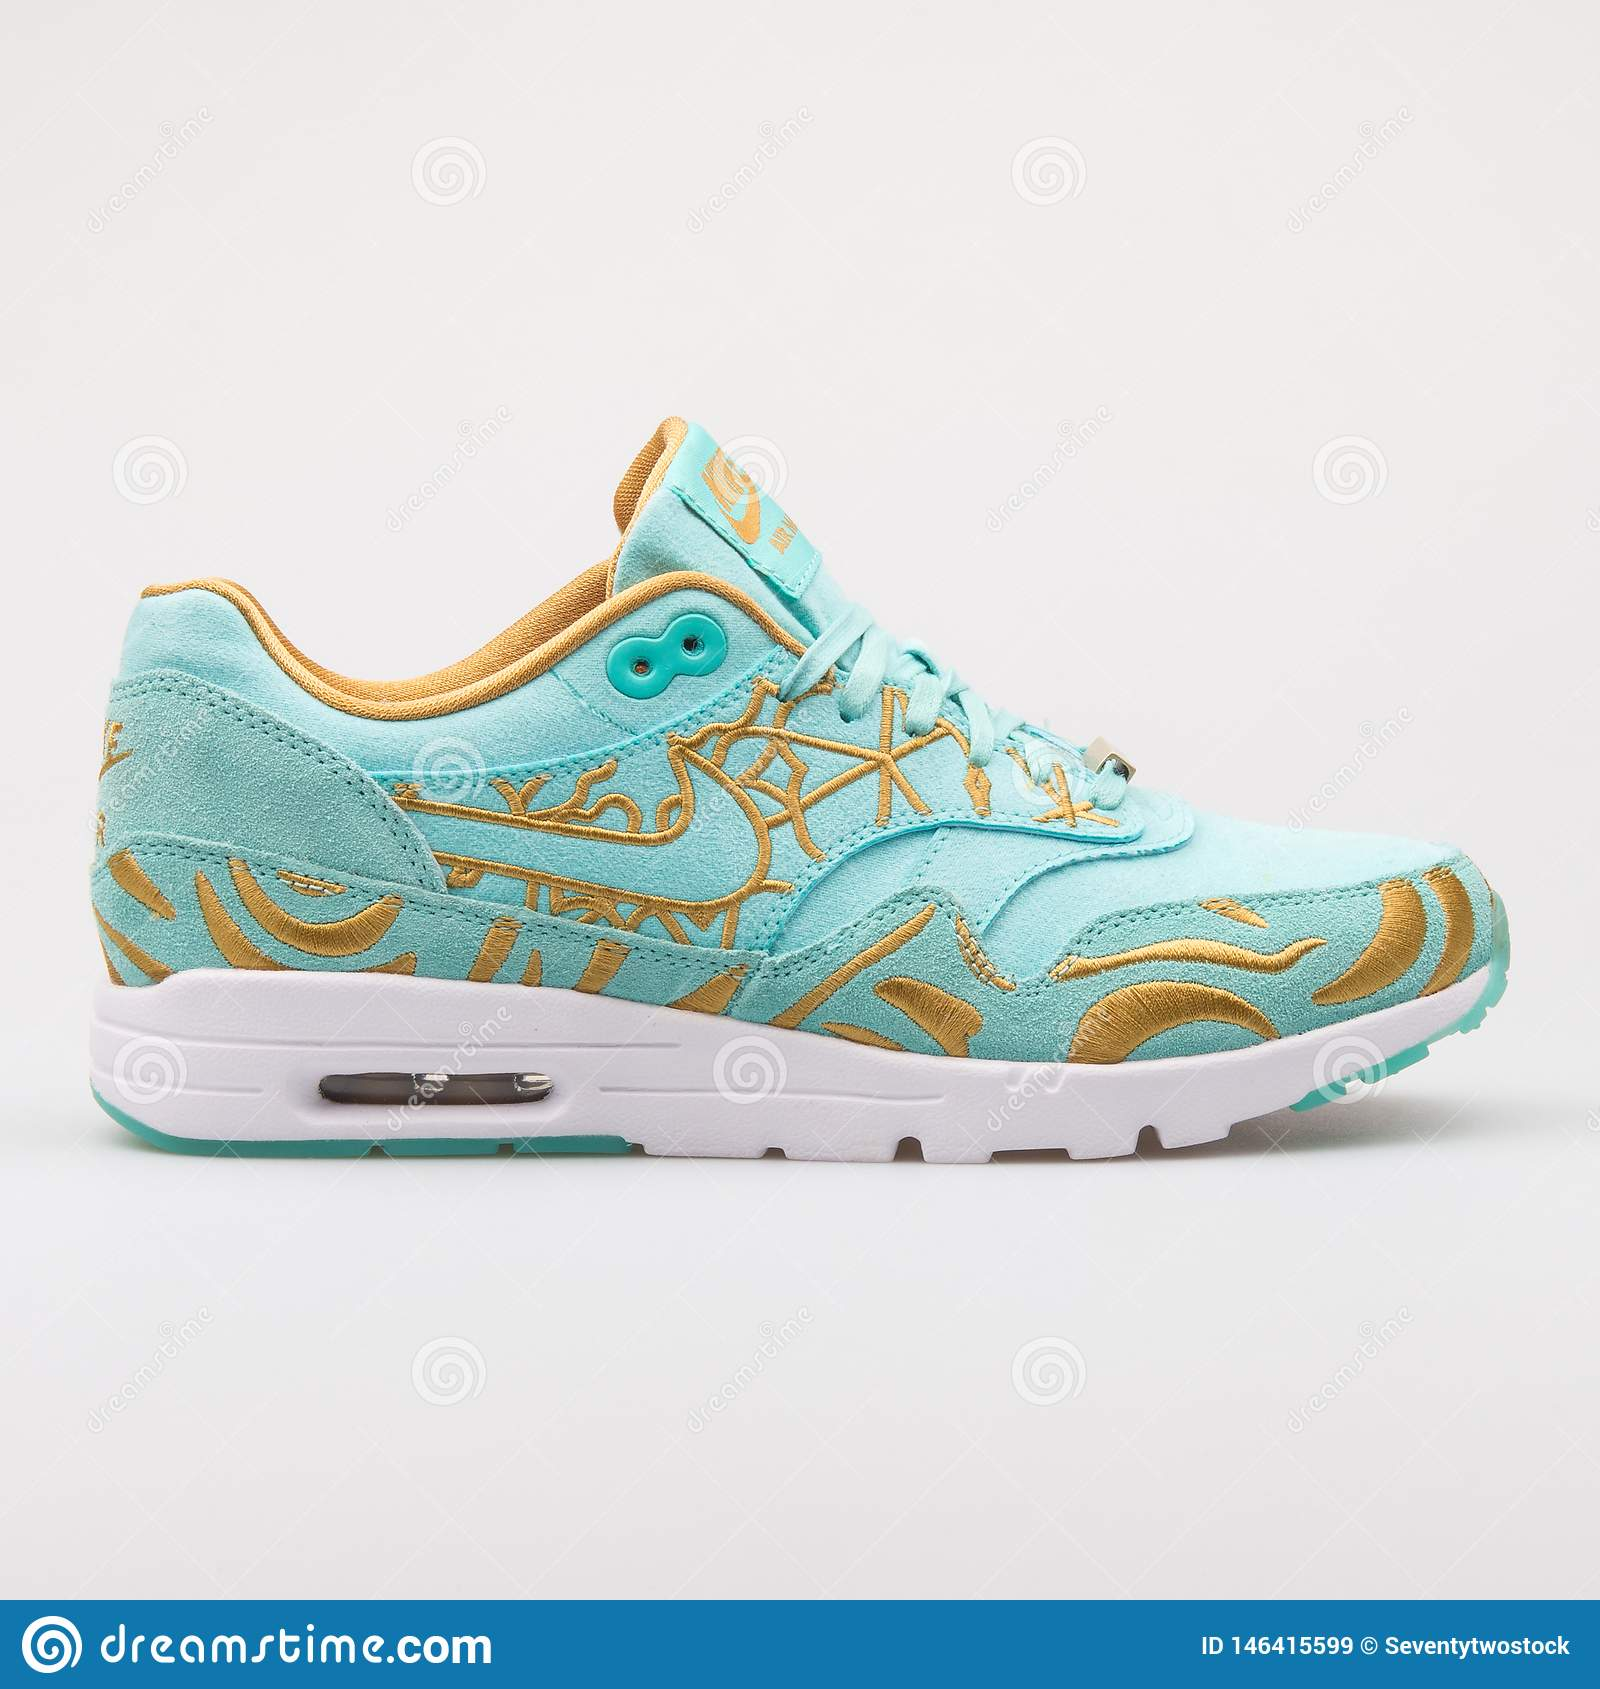 Nike Air Max 1 Ultra LOTC QS Green And Gold Sneaker